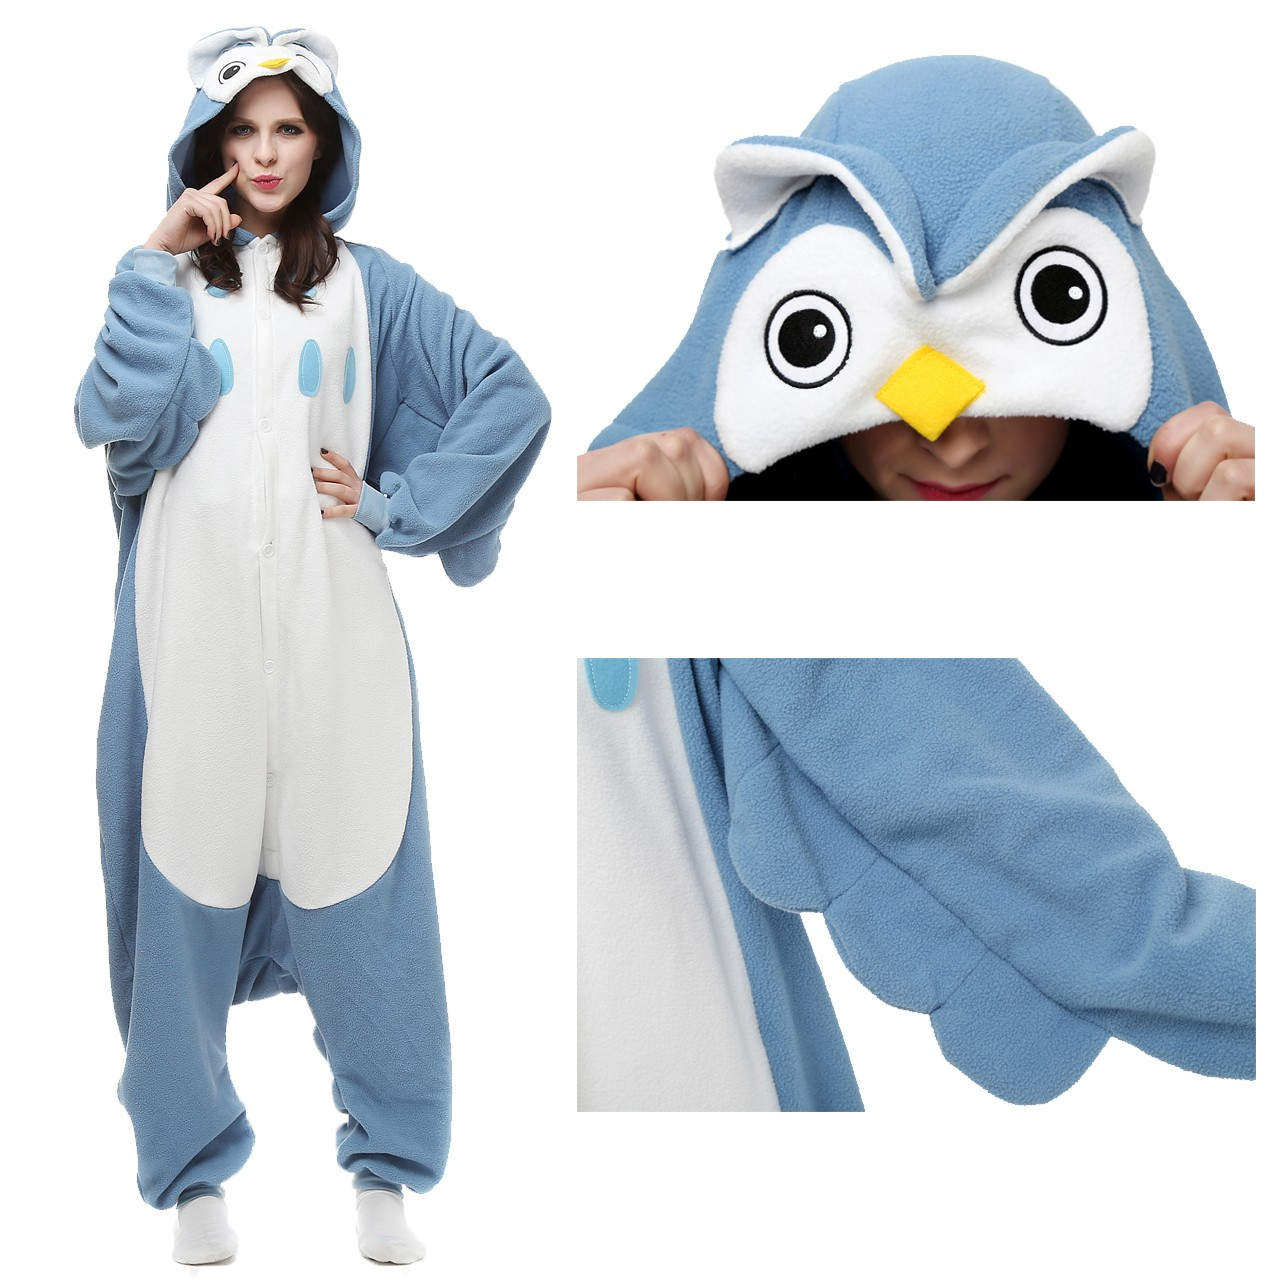 b3d7d5c35568 Owl Onesie Animal Kigurumi Pajama for Adult Halloween Costumes